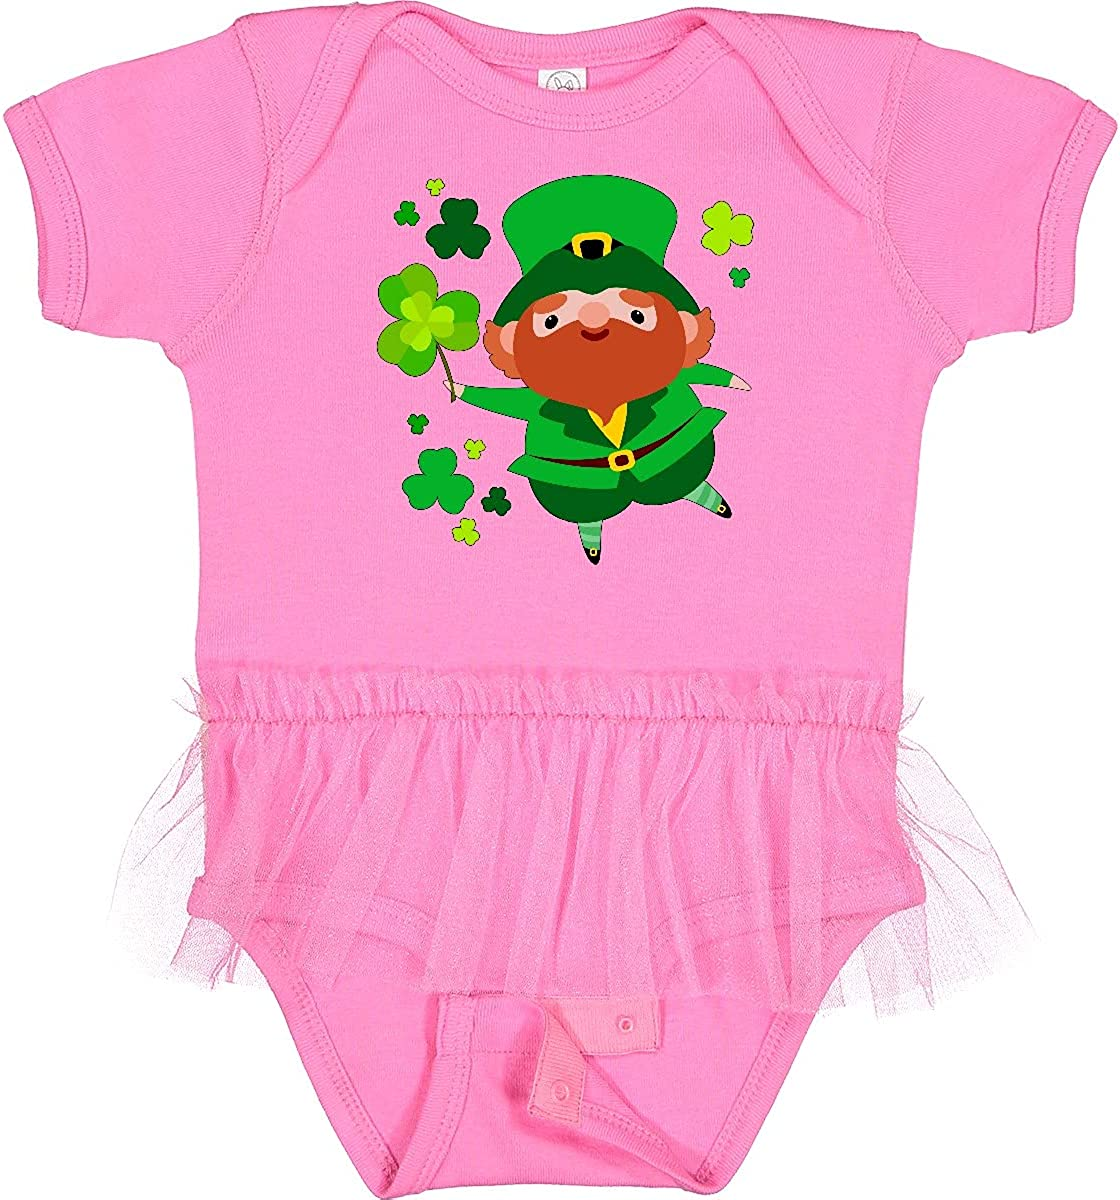 inktastic Cute Leprechaun for St. Infant Animer and price revision Day Don't miss the campaign Tutu Body Patrick's